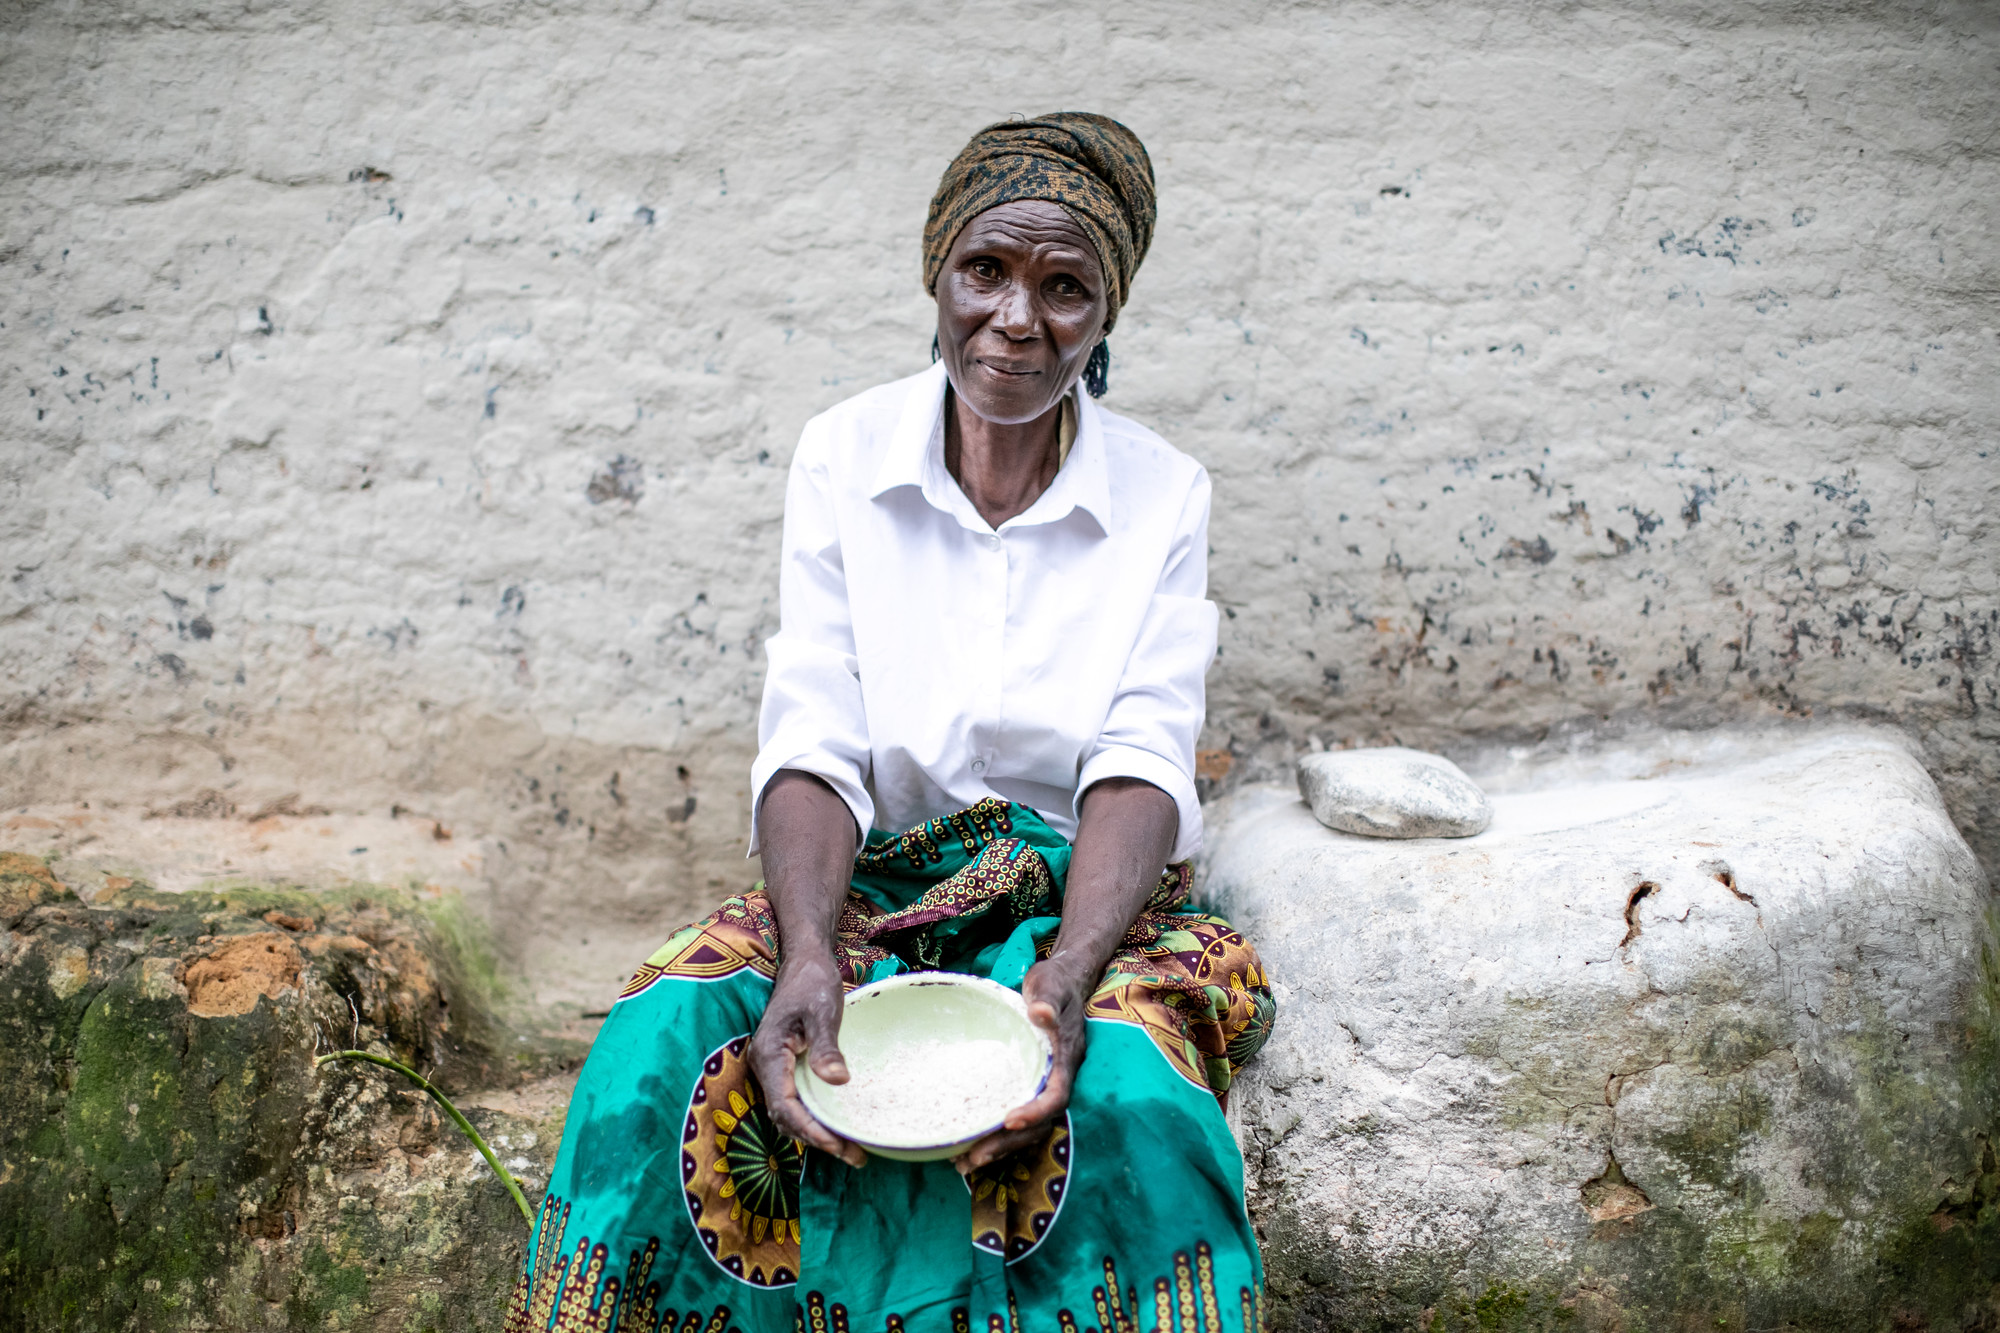 A woman sits outside with a bowl in her hands.